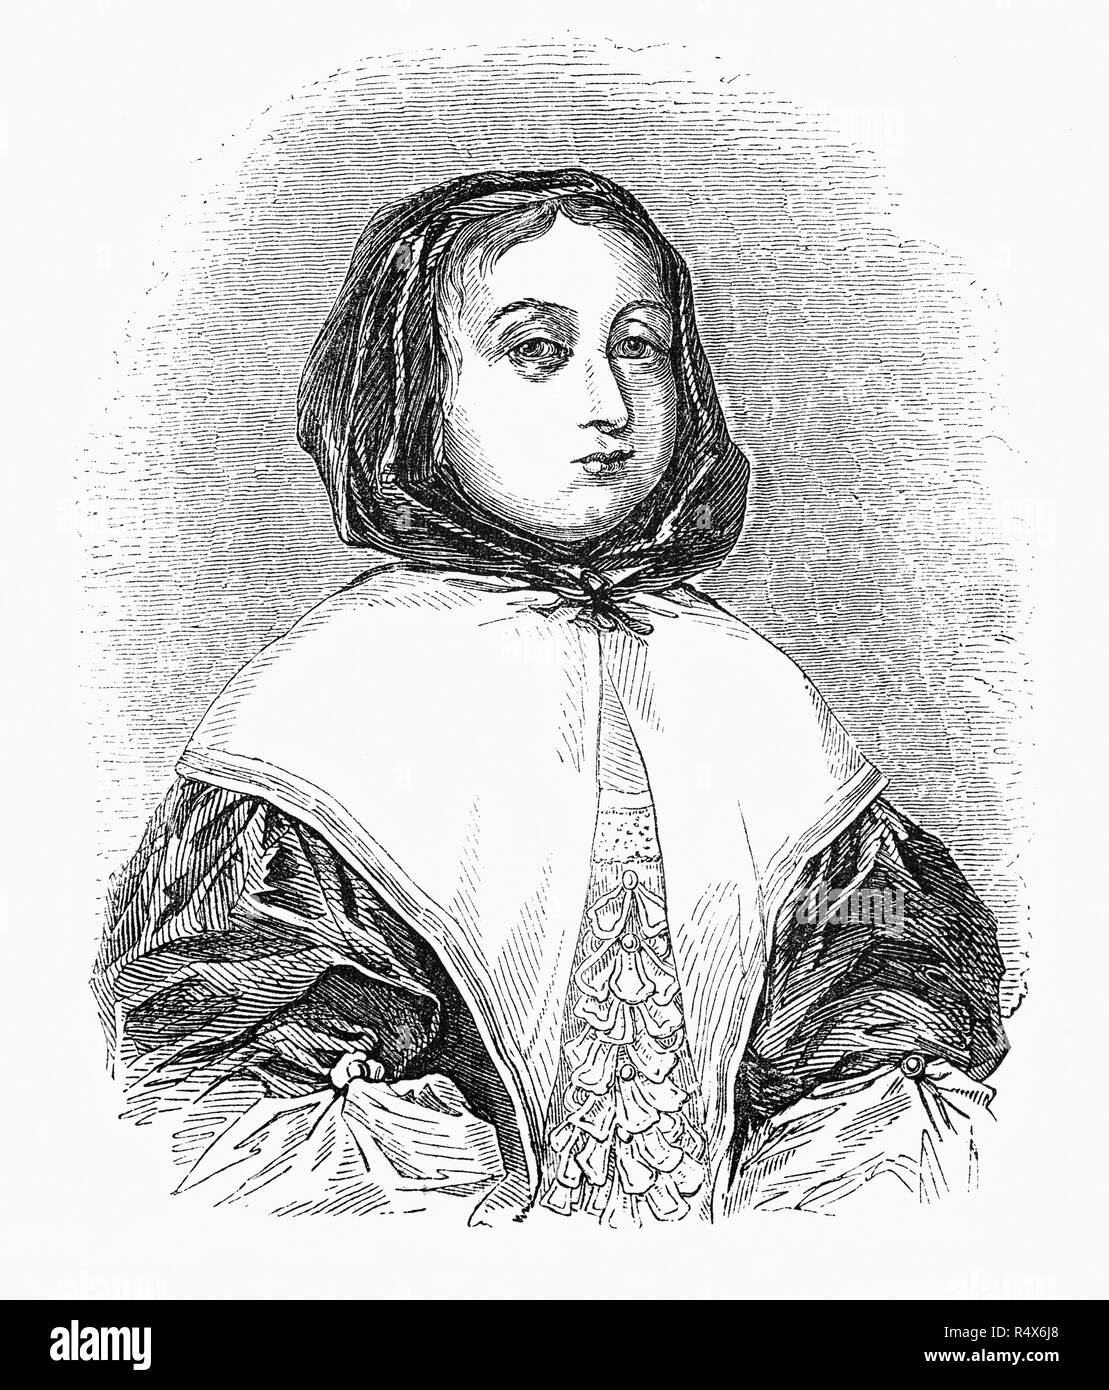 Elizabeth Cromwell (née Bourchier; 1598–1665) was the wife of Oliver Cromwell, Lord Protector of England, Scotland and Ireland. She married Oliver Cromwell on 22 August 1620 at St Giles, Cripplegate, London. The marriage to Elizabeth was very advantageous for Cromwell, as her father brought him into contact with the wealthy merchant community of London, and due to the extensive lands Sir James owned in Essex, this family association would later guarantee him much support from the influential families of the local puritan gentry. - Stock Image